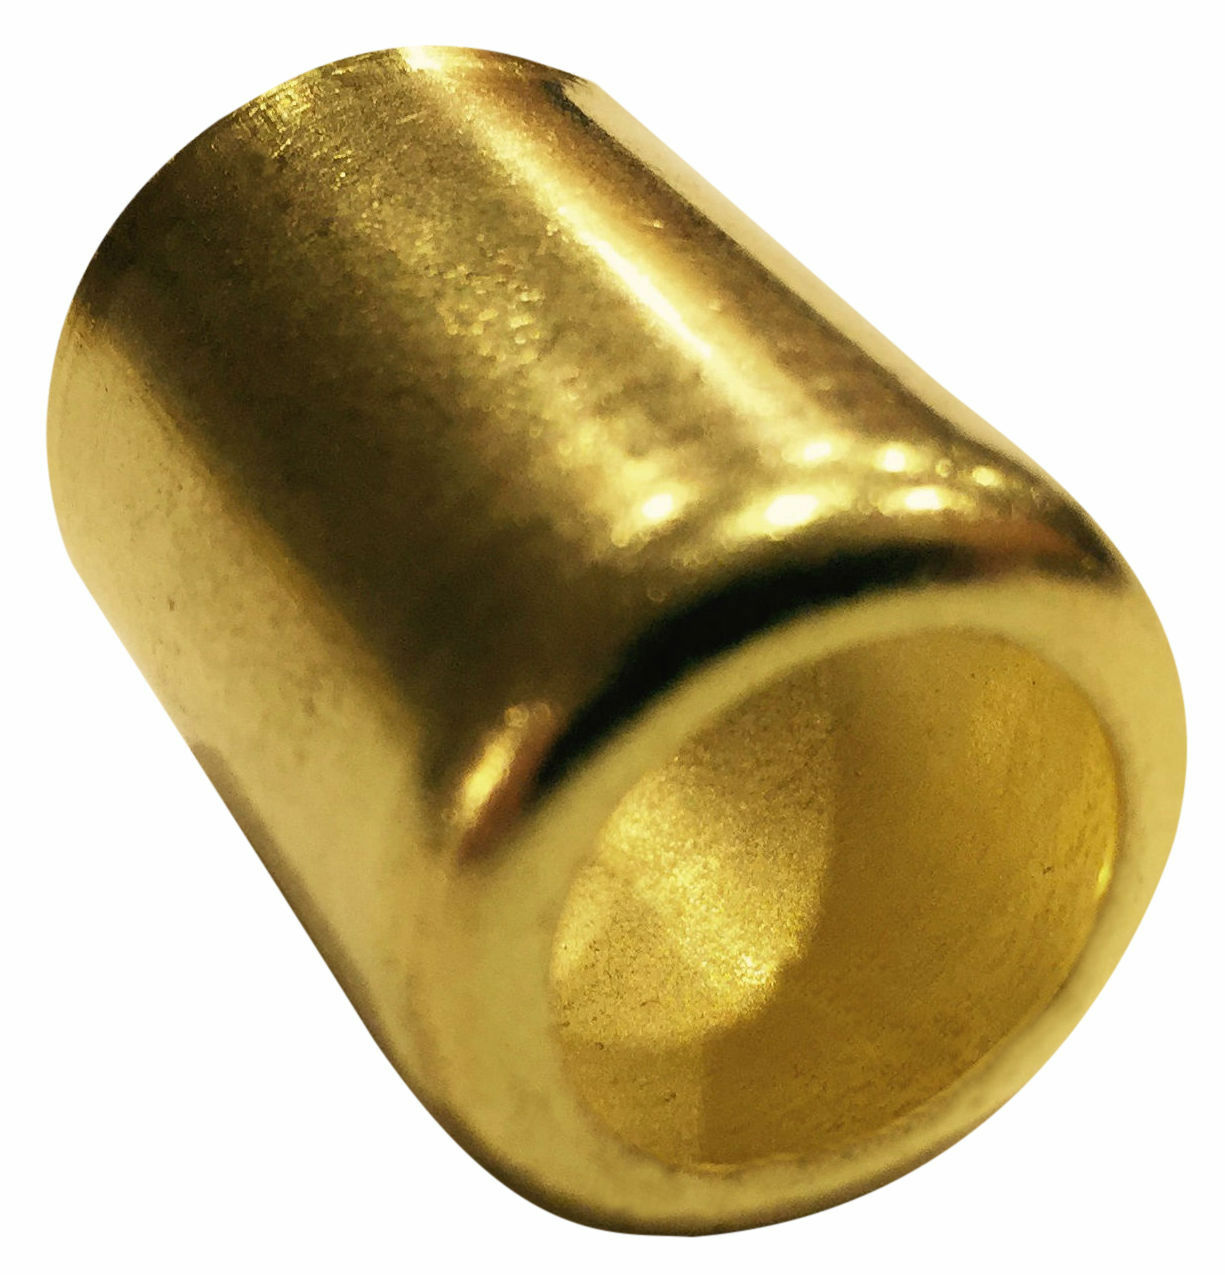 BRASS HOSE FERRULES for Air & Water Hose. Build or Repair your own ...